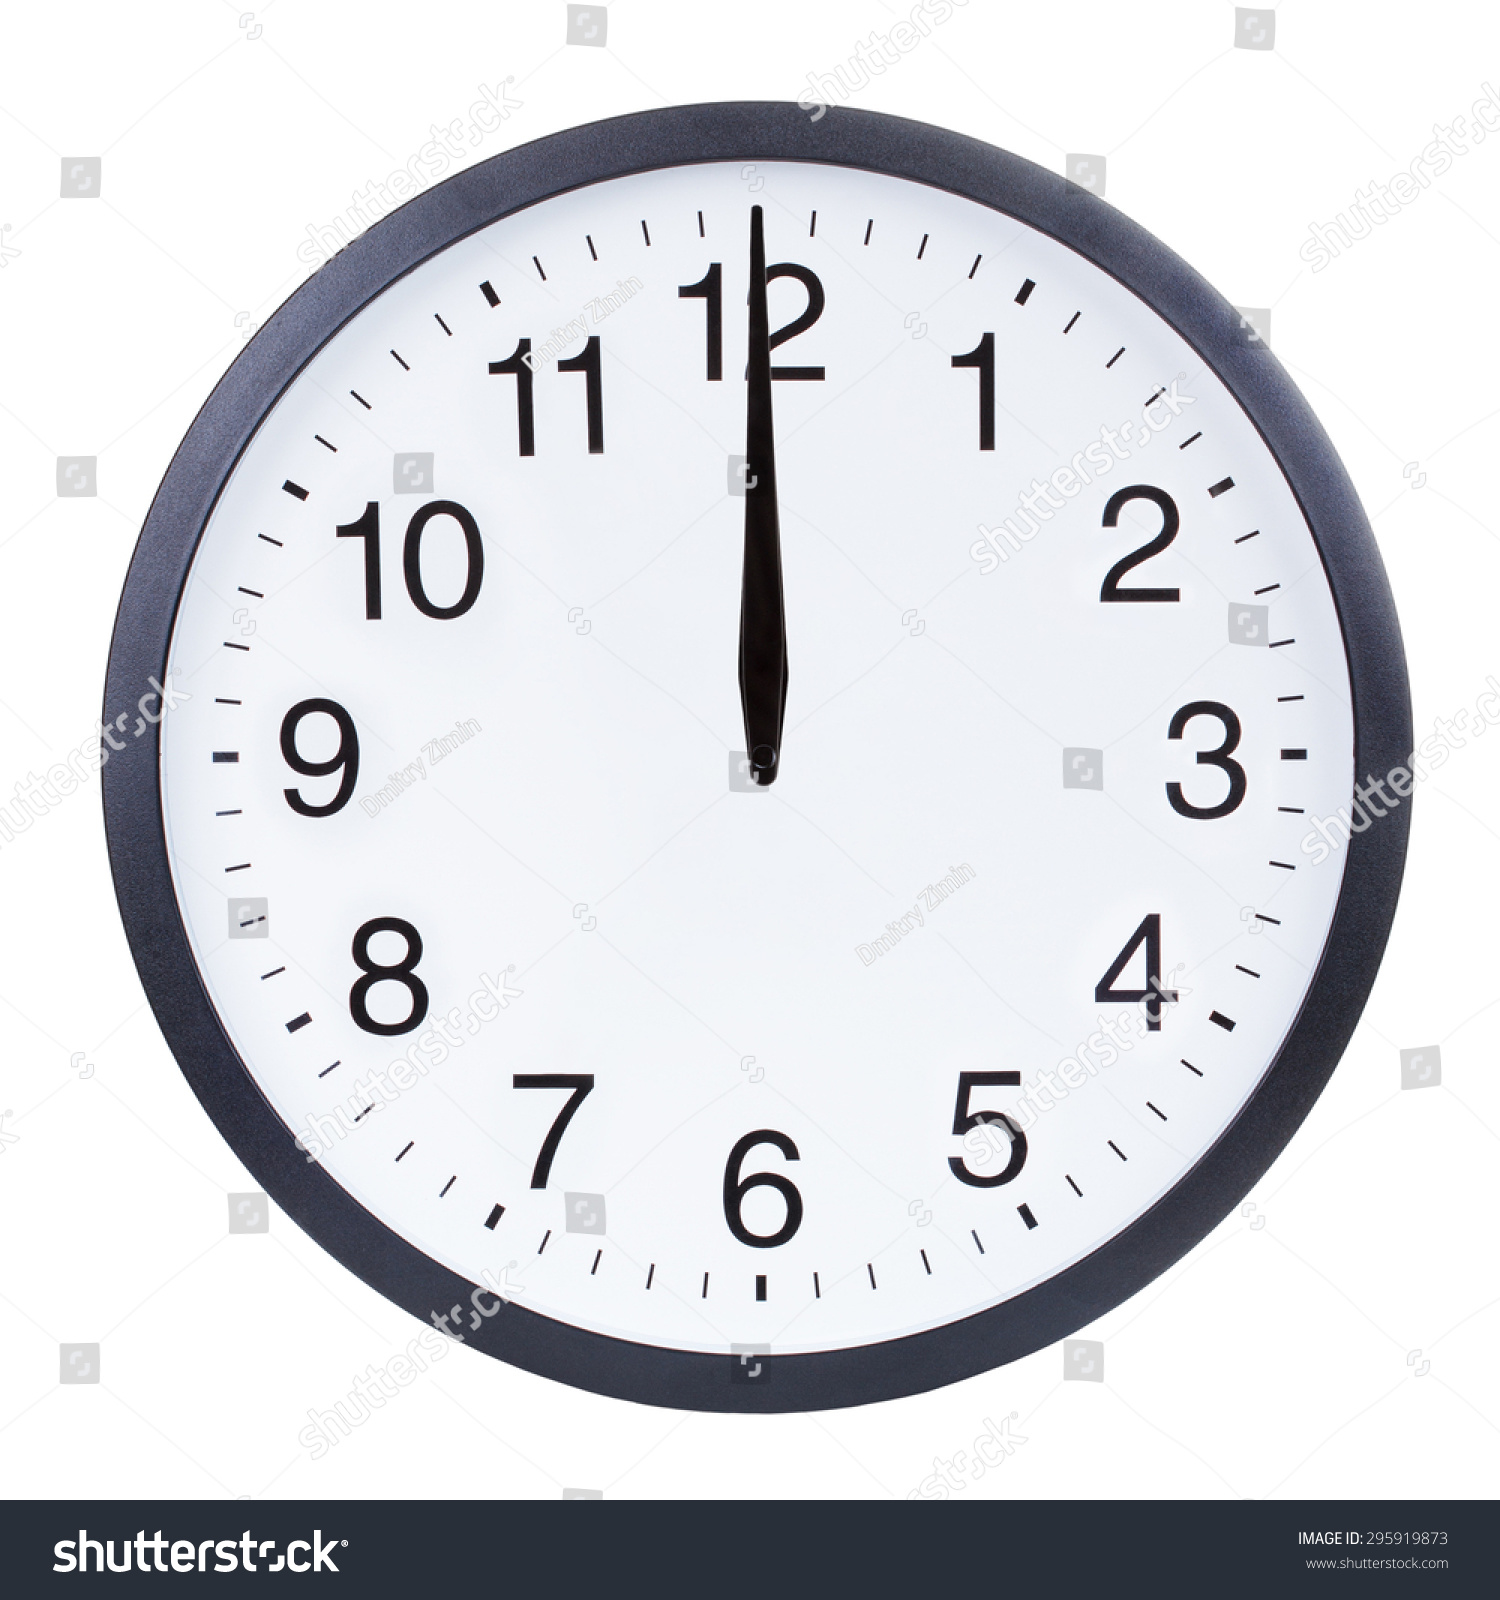 Blank Clock Face With Hour Minute And Second Hands